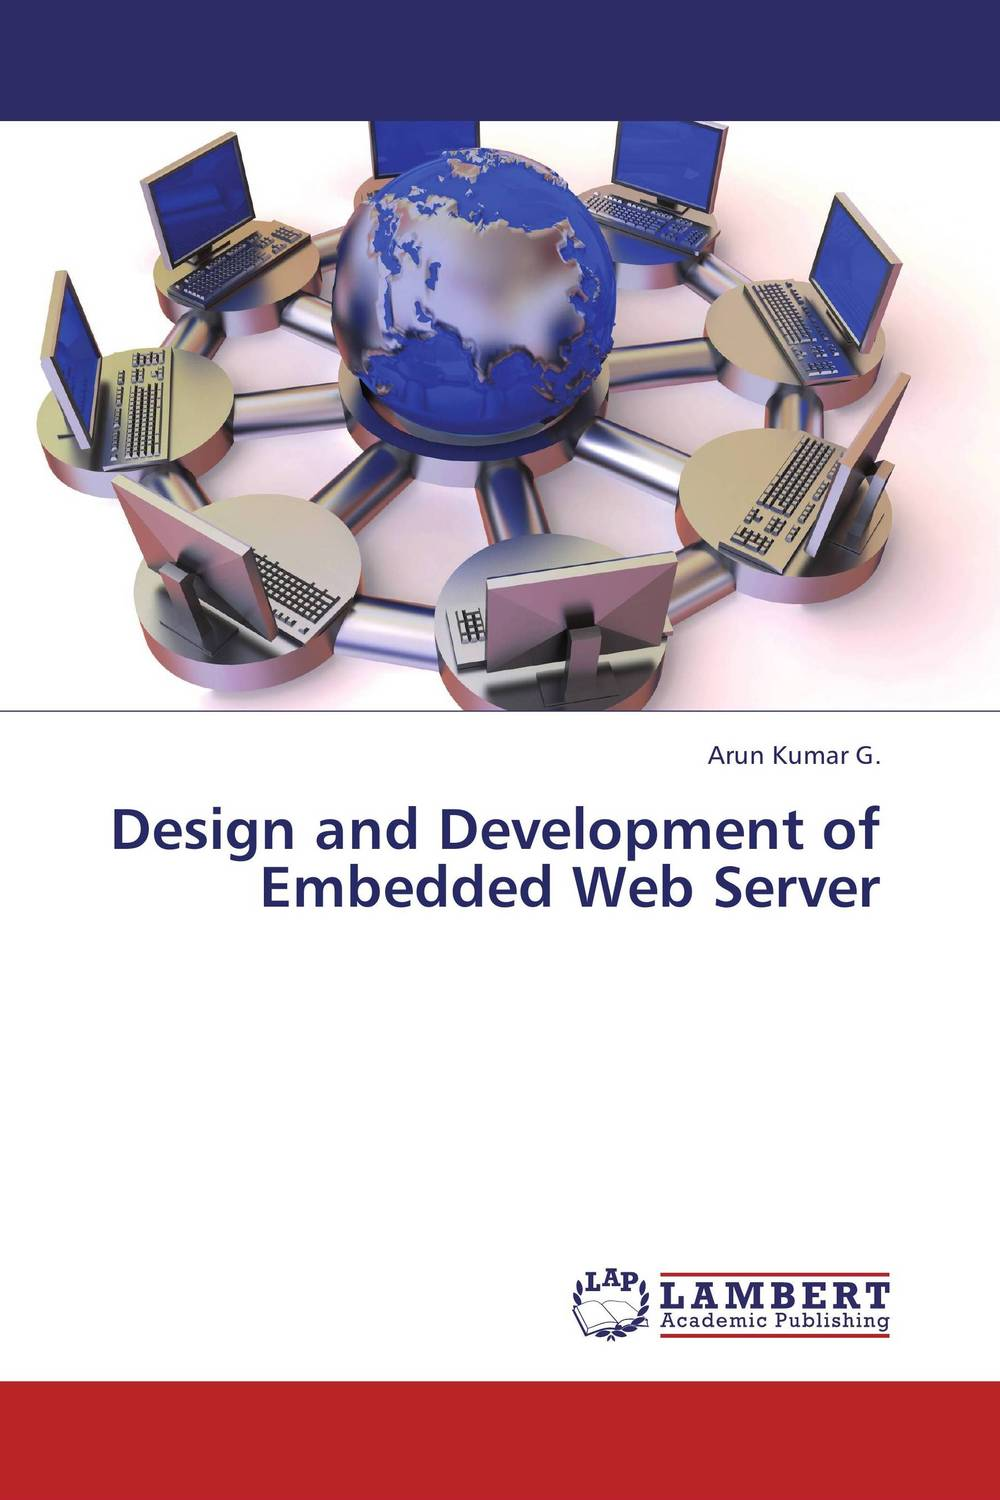 Design and Development of Embedded Web Server